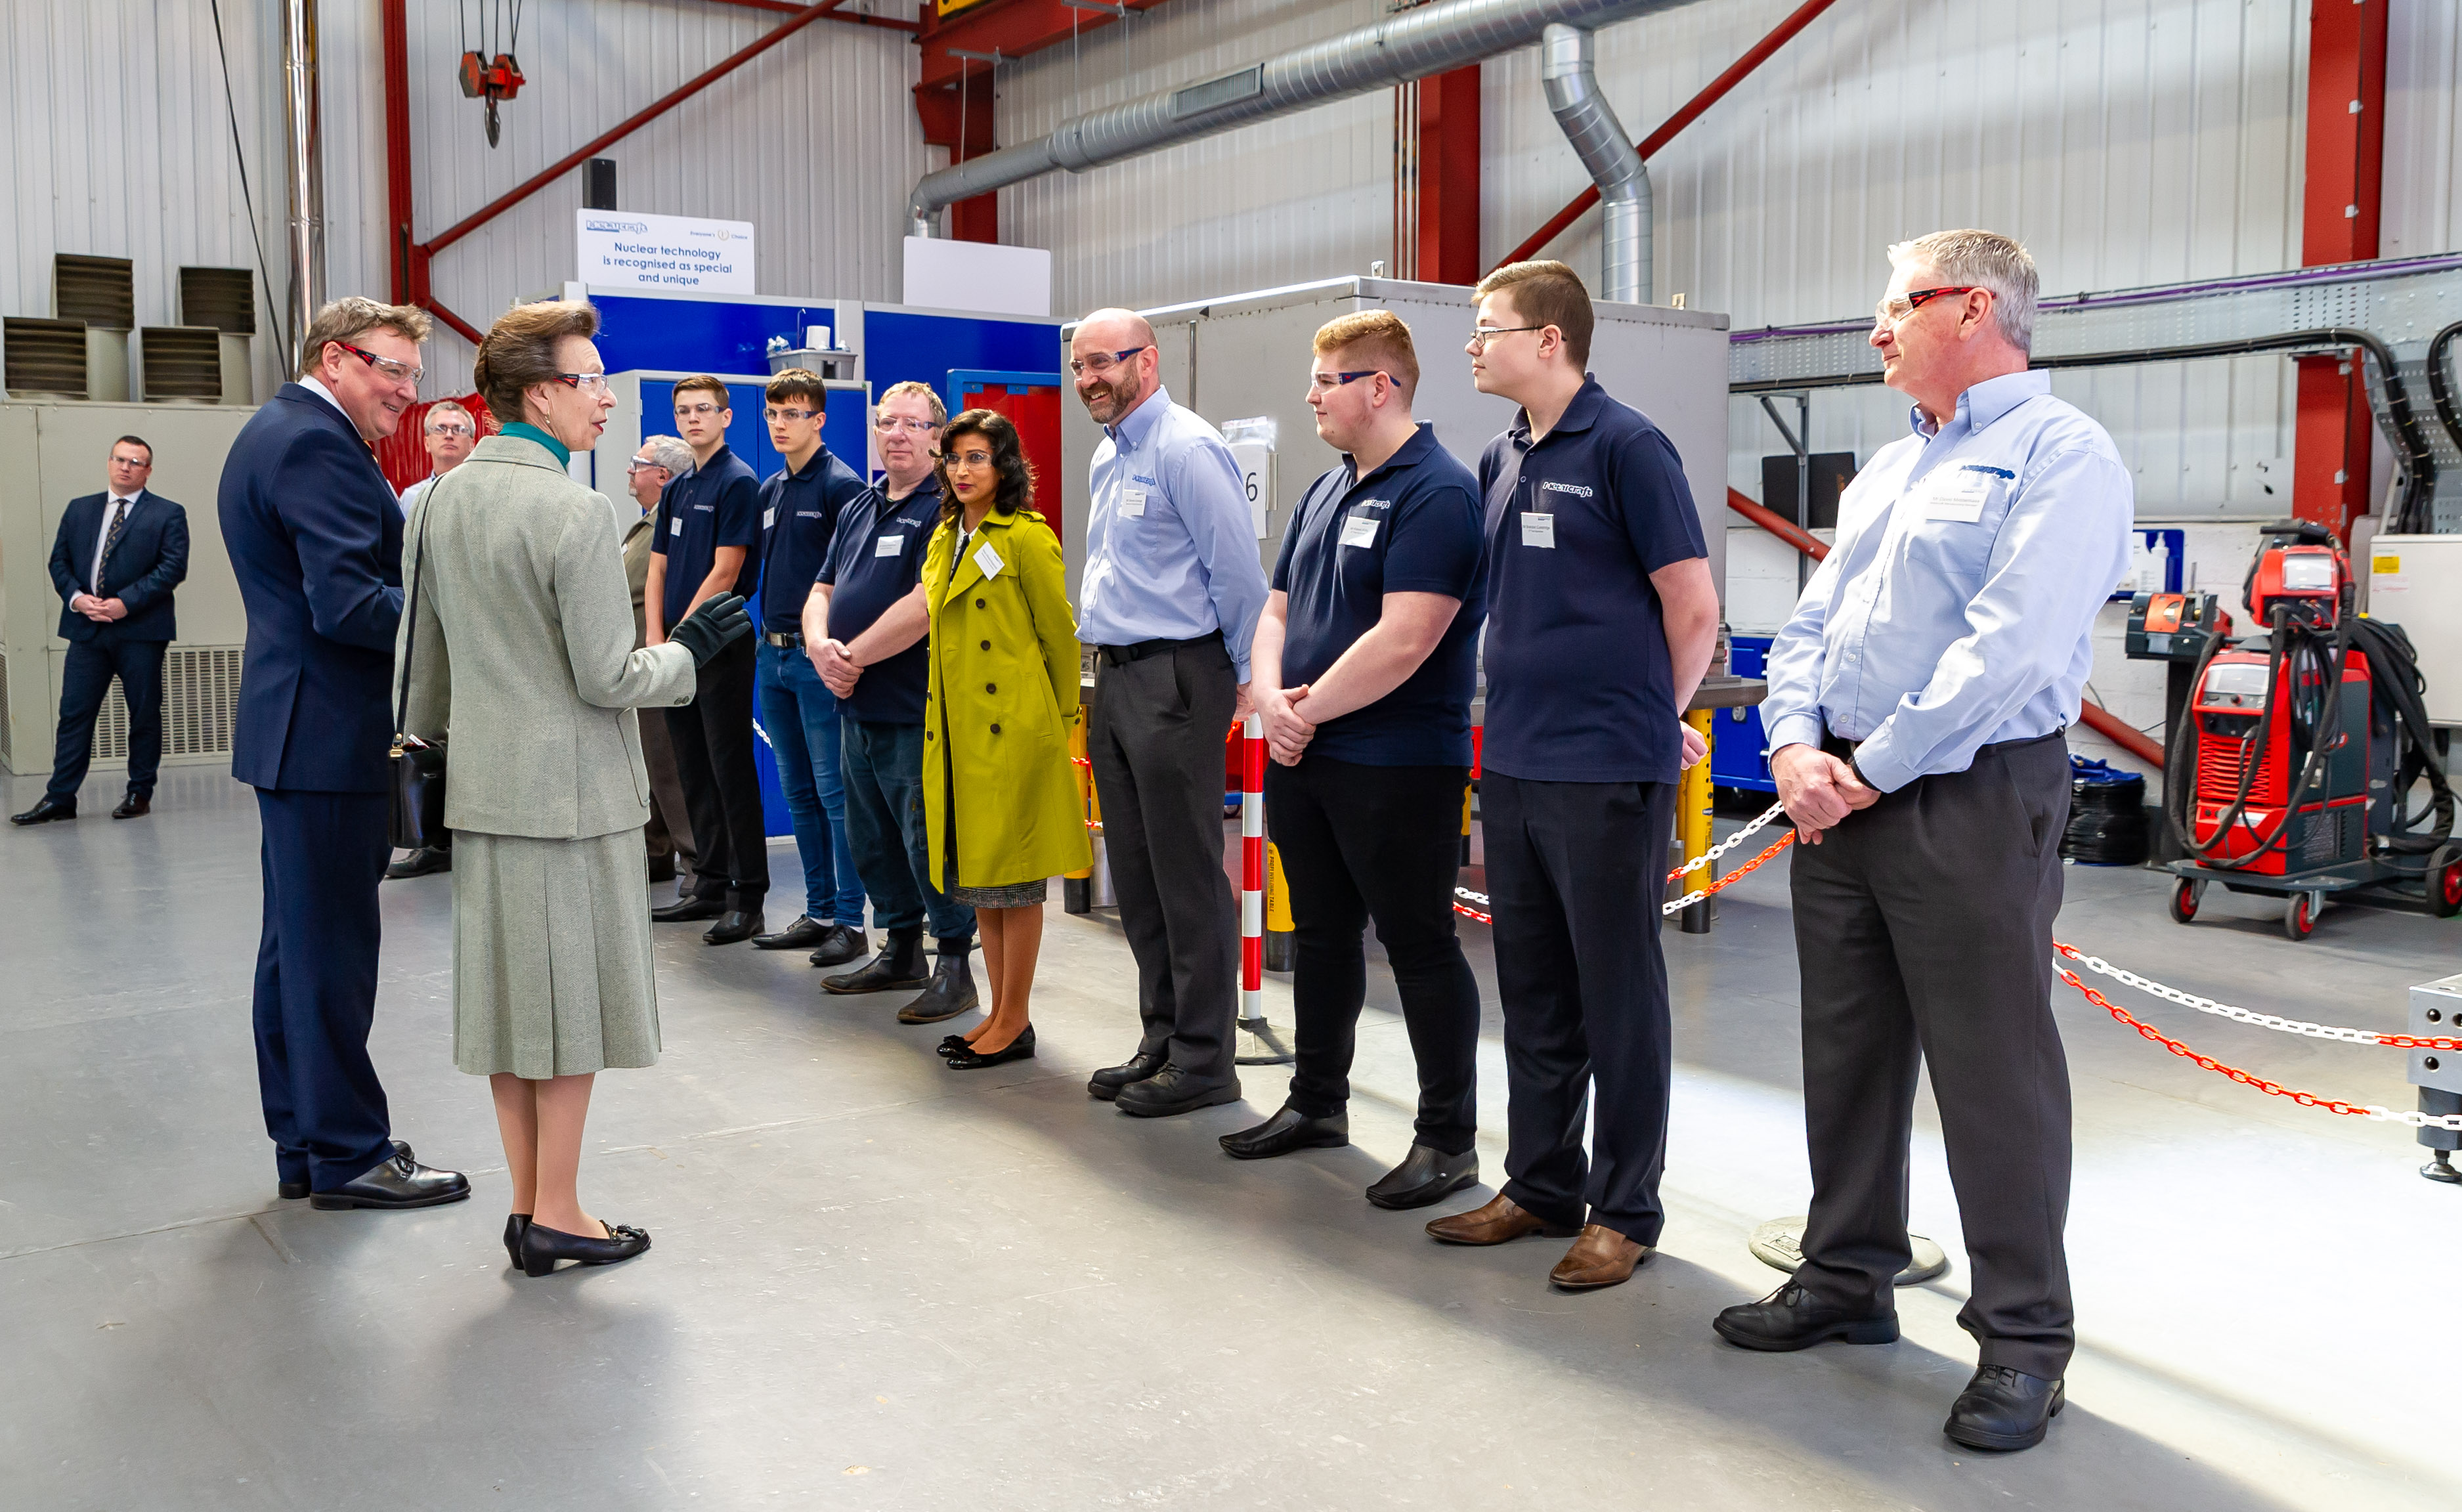 HRH the Princess Royal visits Stainless Metalcraft - March 2019